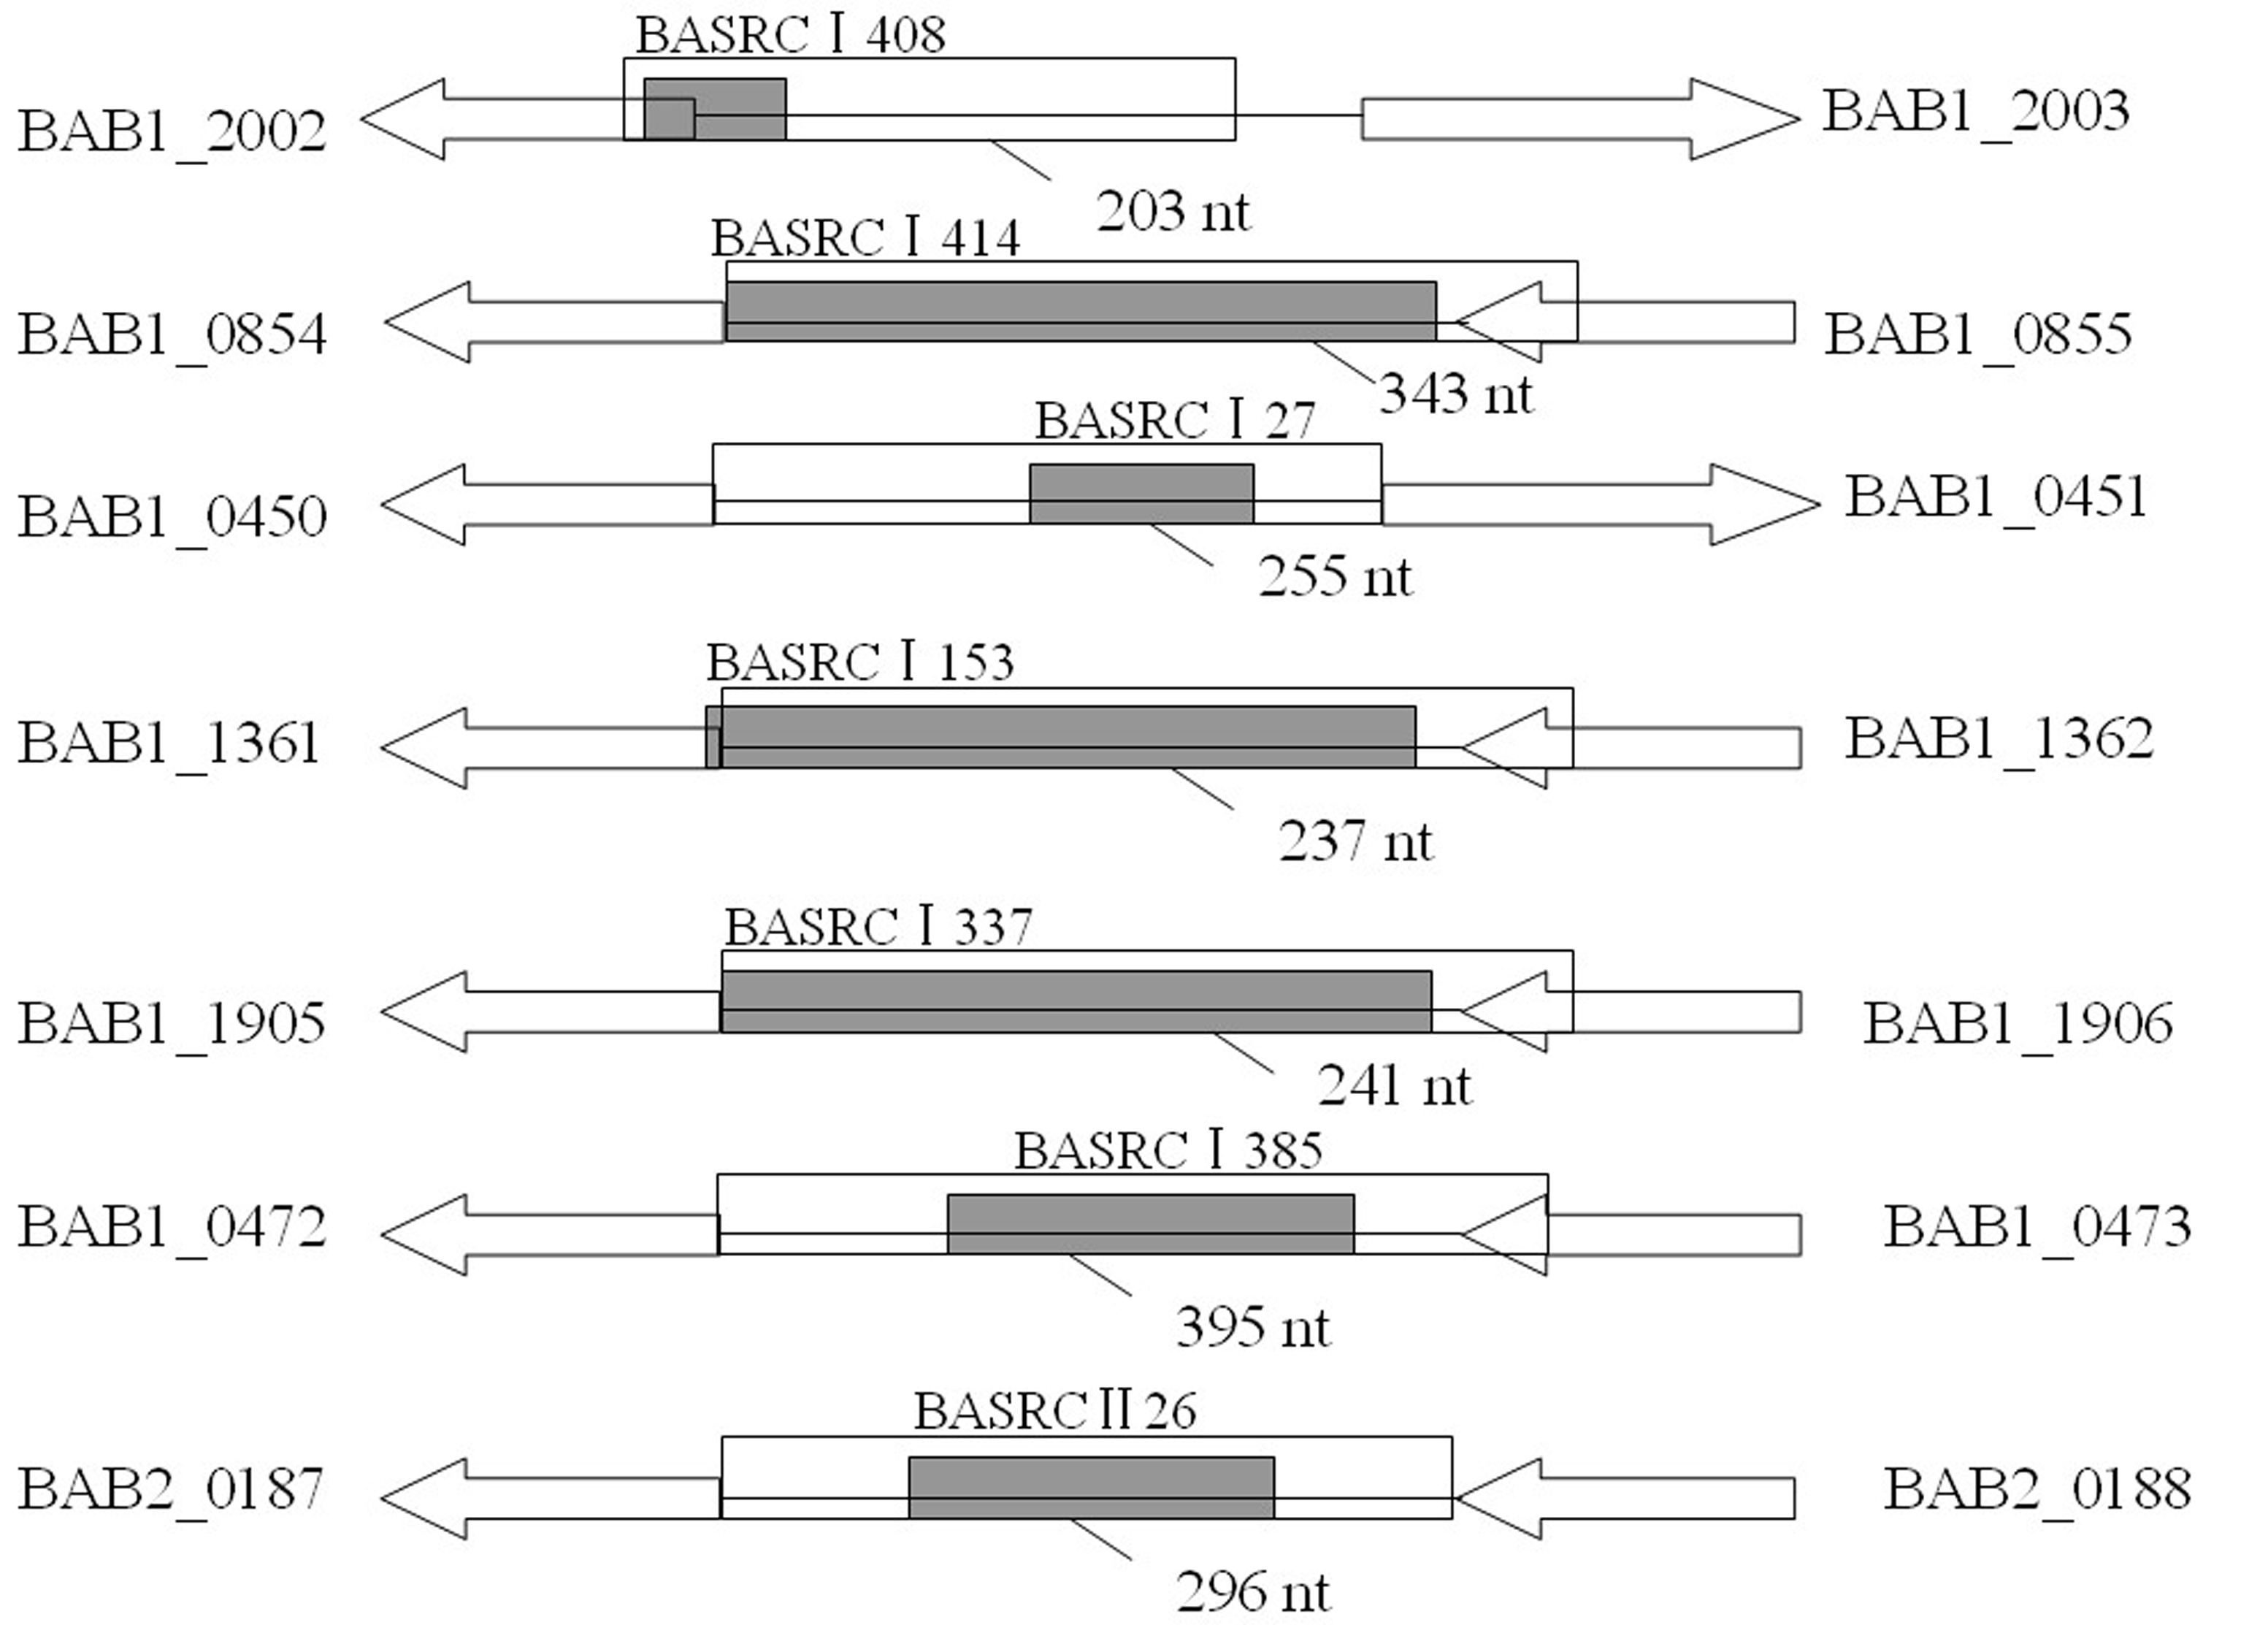 s1 the schemes of cloning of putative target sequences of verified srnas into pmr lacz plasmid